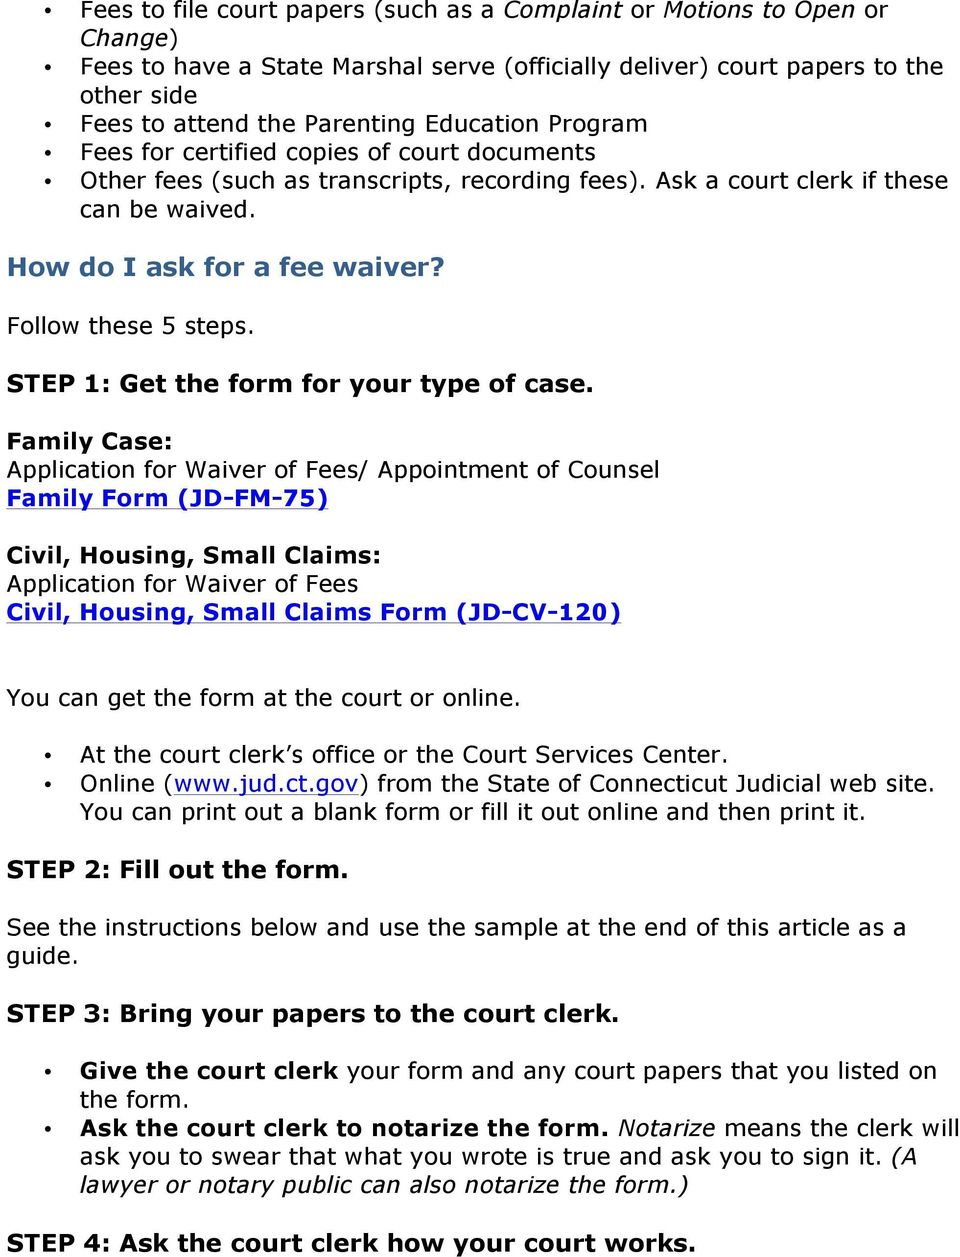 Court Costs and Fees (A Guide to Fee Waivers) - PDF